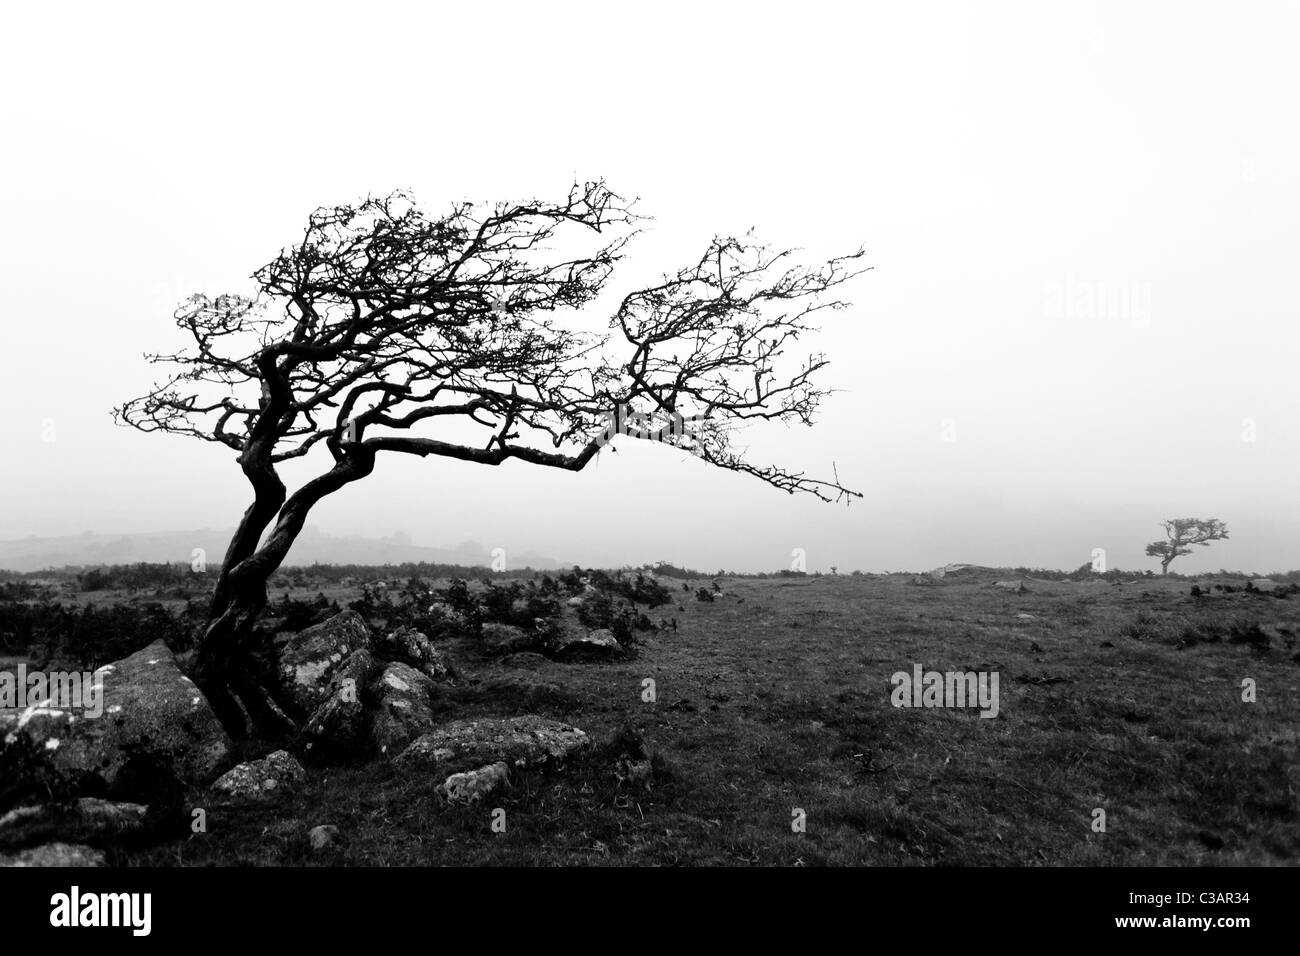 Windswept hawthorn bush/tree on dartmoor.  Shot in black and white in the mist - Stock Image